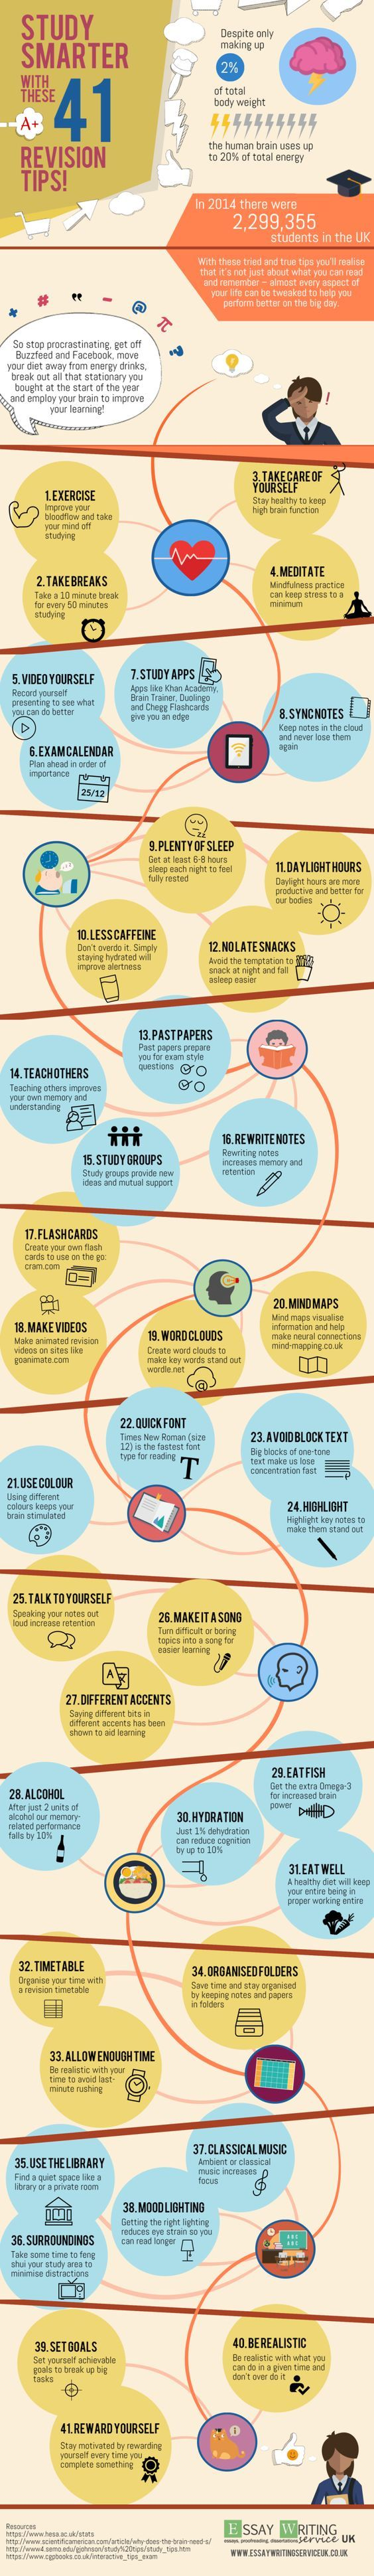 17 best ideas about revision timetable maker high 41 revision tips to study smarter infographic elearninginfographics com